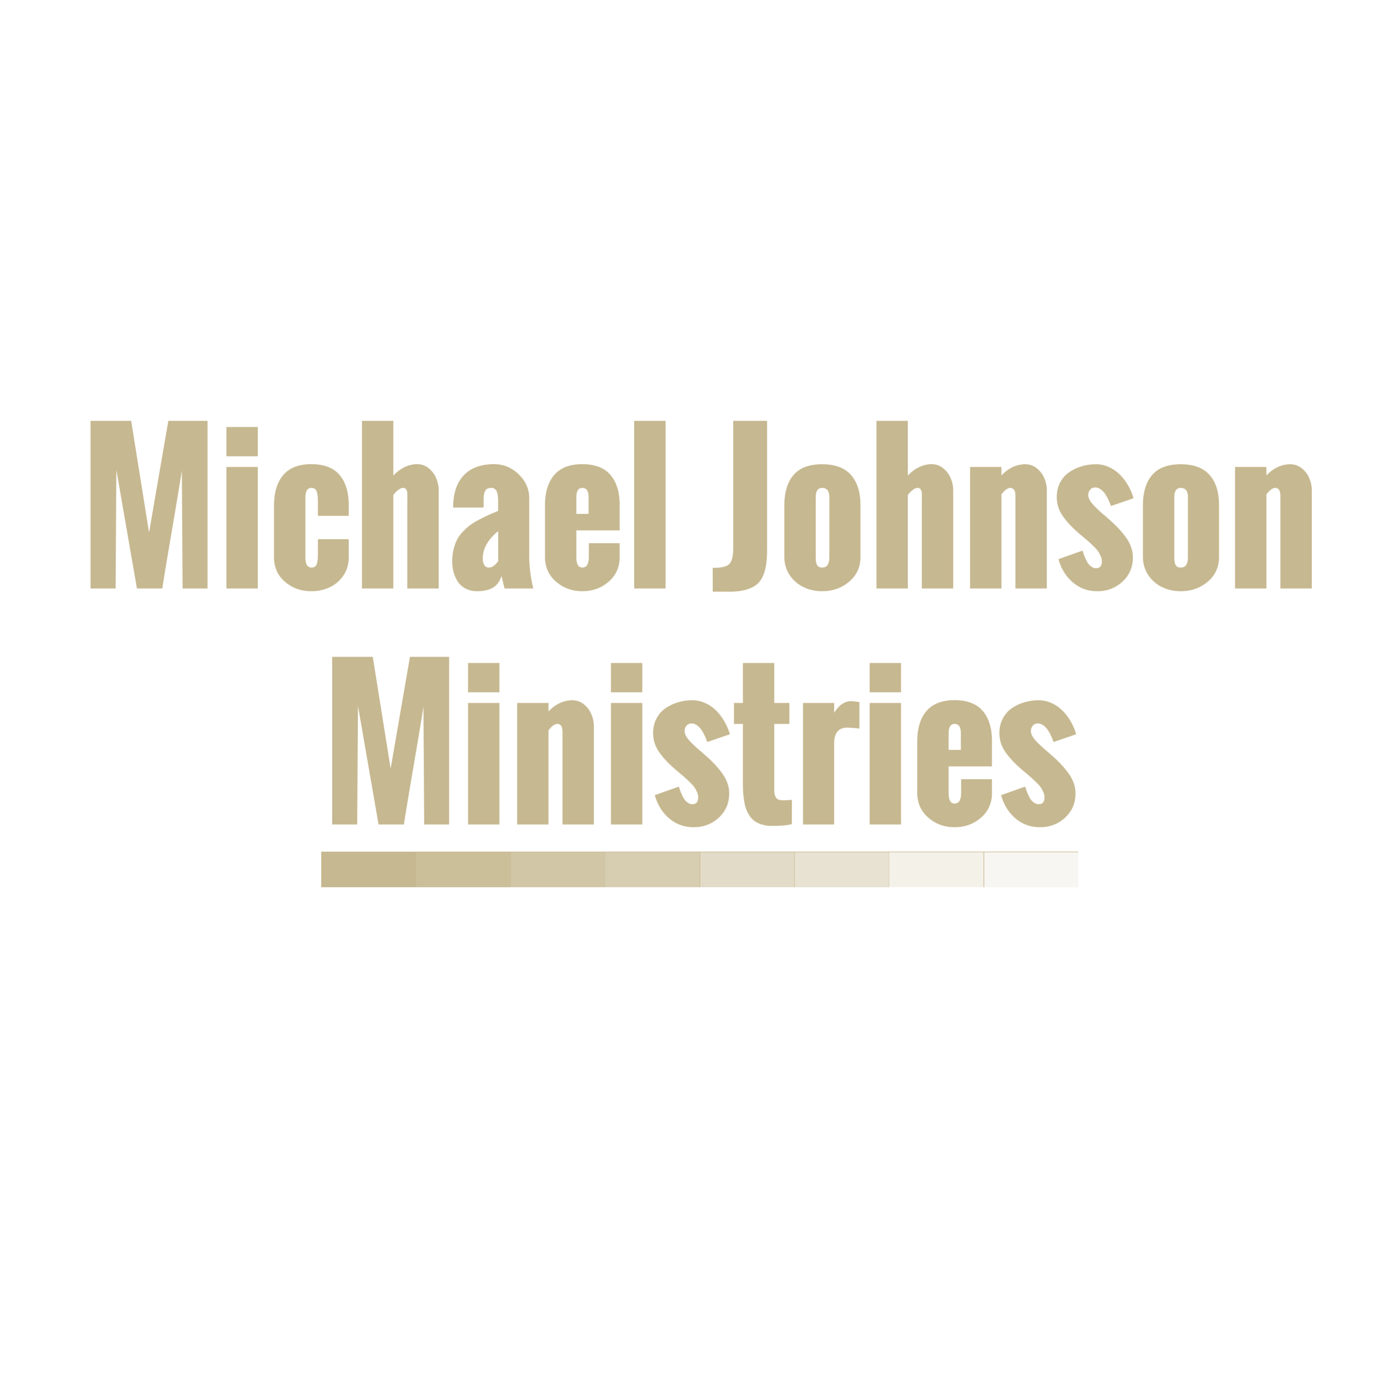 M. Johnson Ministries